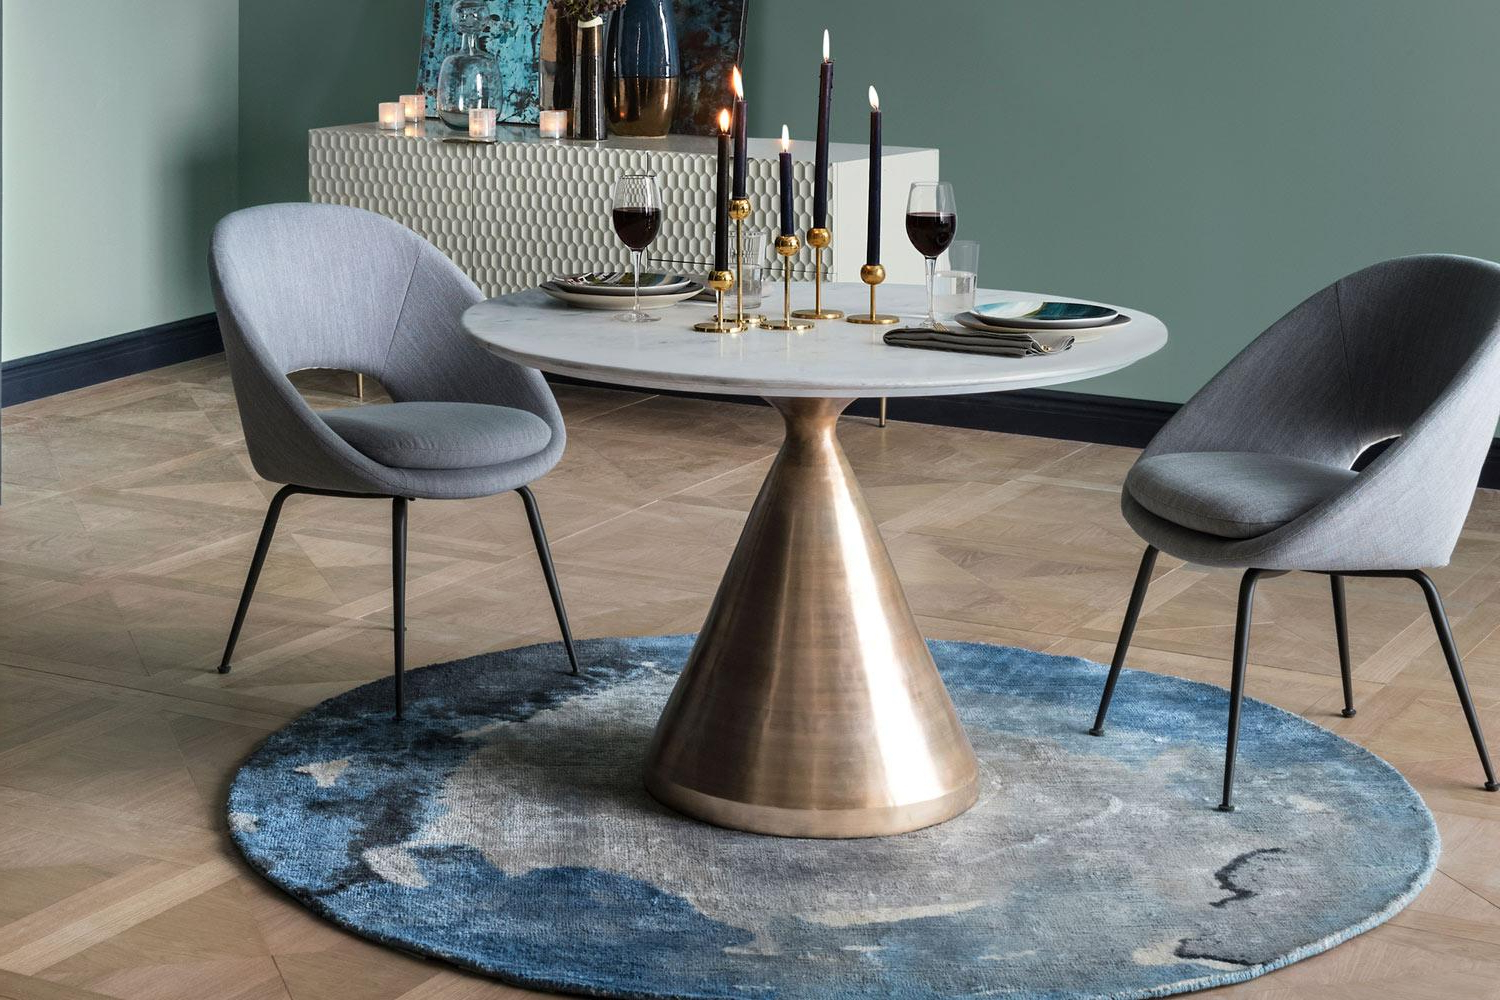 Current Best Dining Tables: The Best Stylish Dining Room Tables 2019 For Aztec Round Pedestal Dining Tables (View 9 of 25)